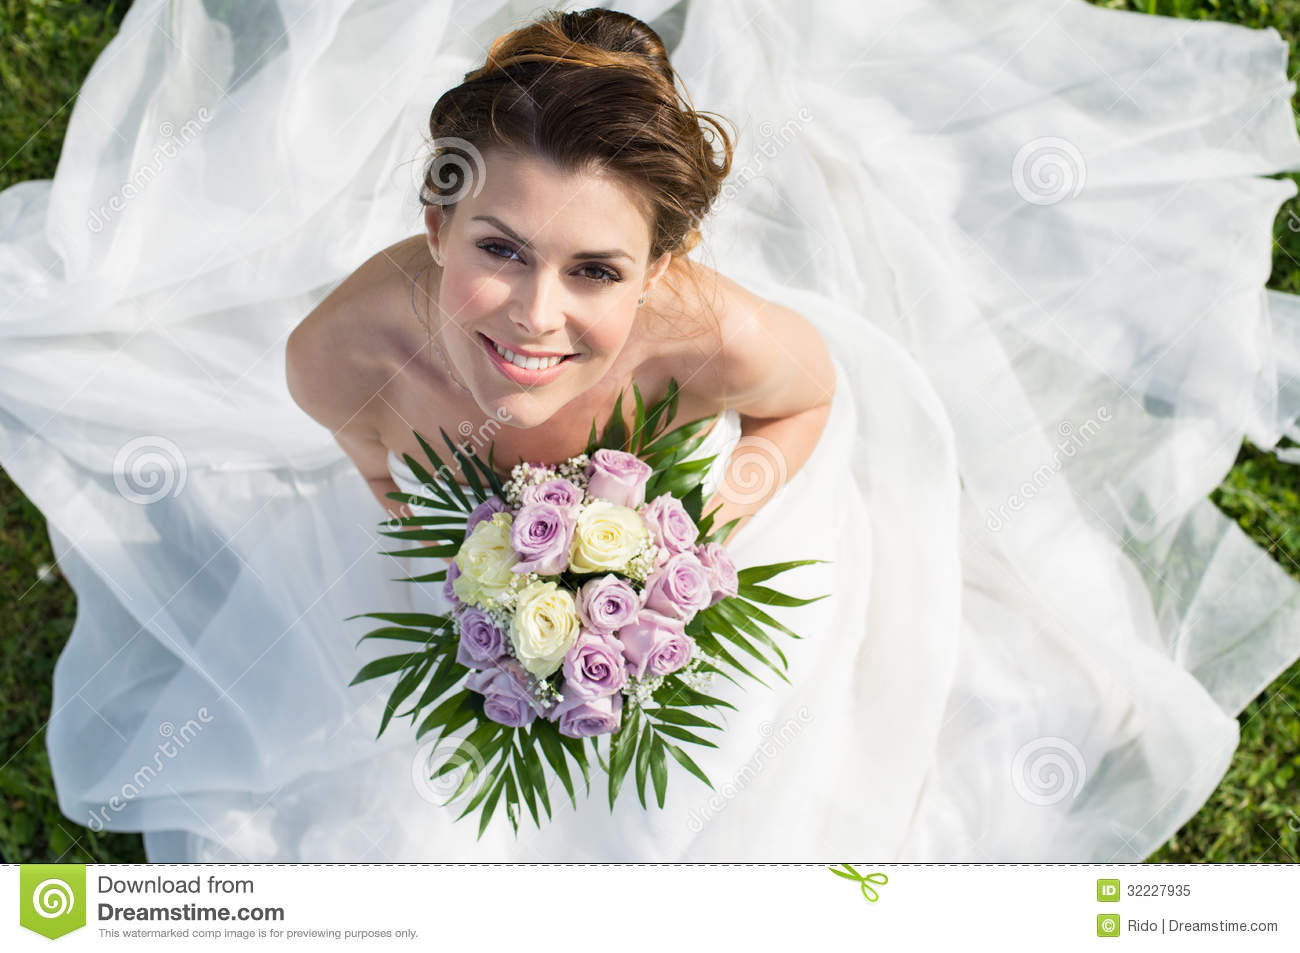 Portrait Of Beautiful Bride Royalty Free Stock Photo - Image: 32227935